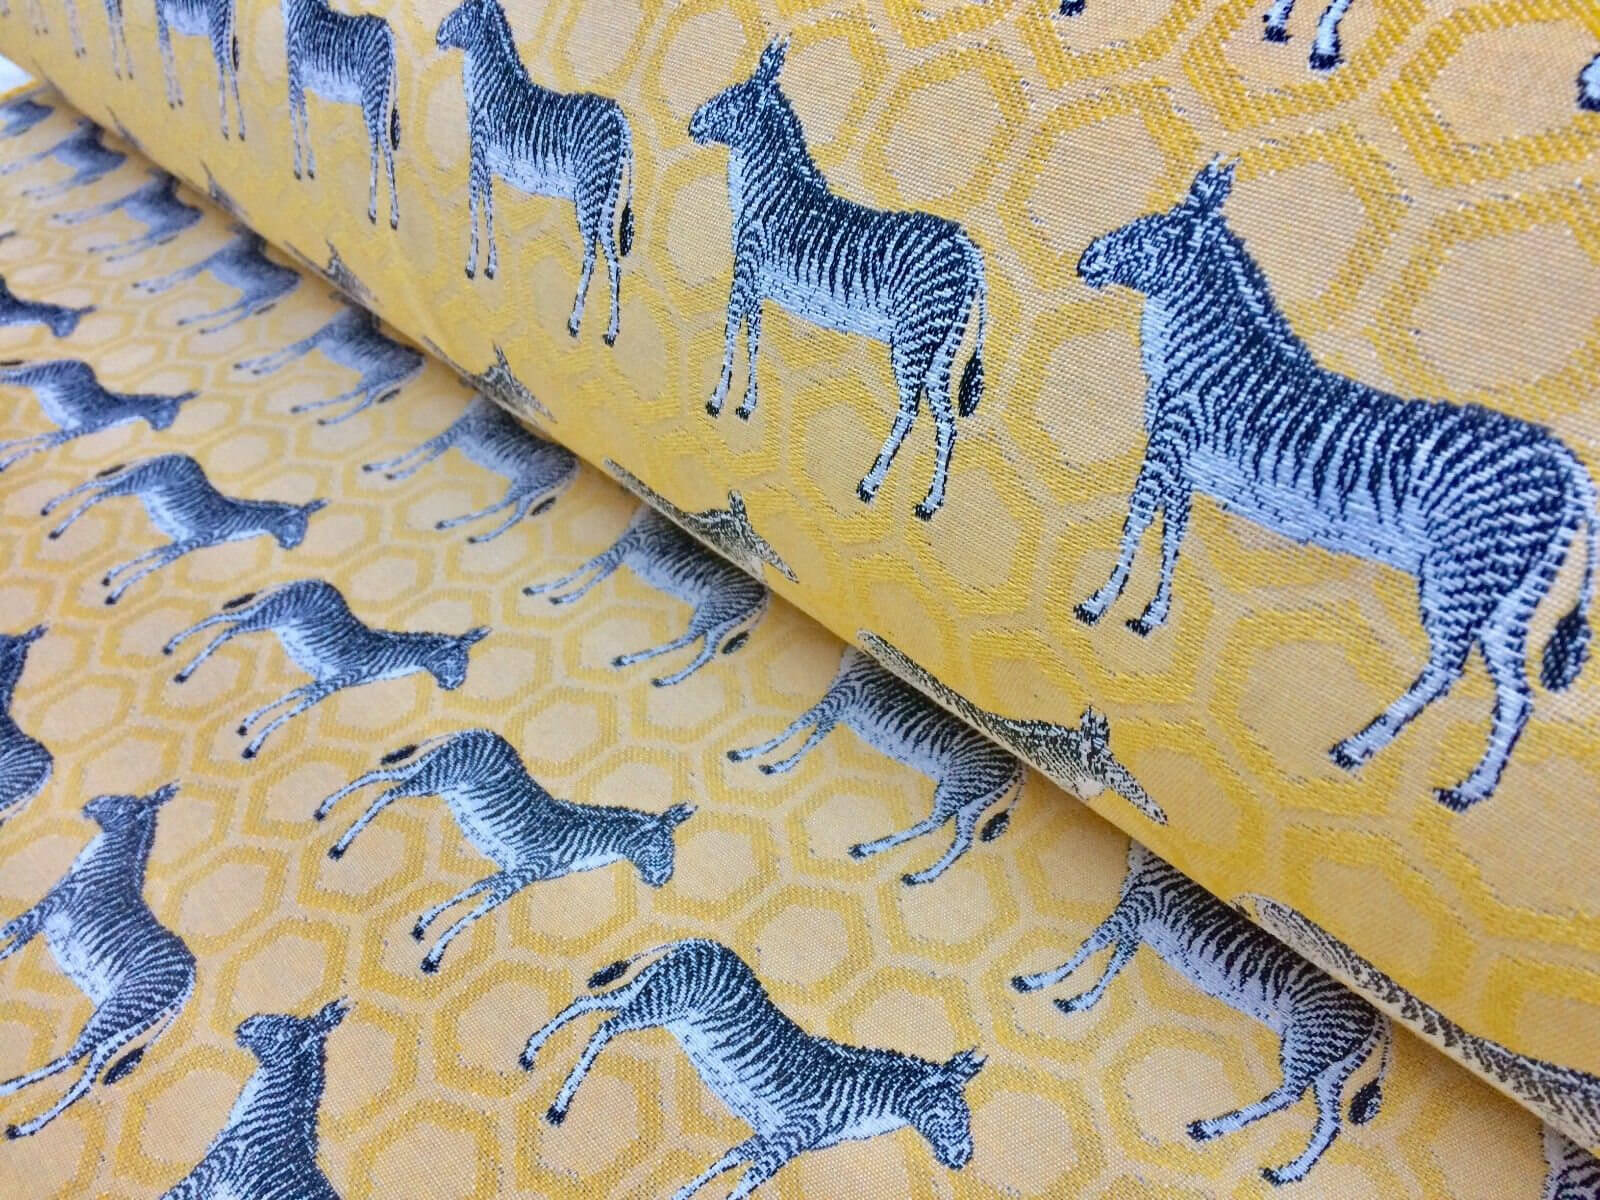 mustard-zebra-jacquard-cotton-fabric-upholstery-material-animal-cloth-55-140cm-wide-5d0d0f741.jpg